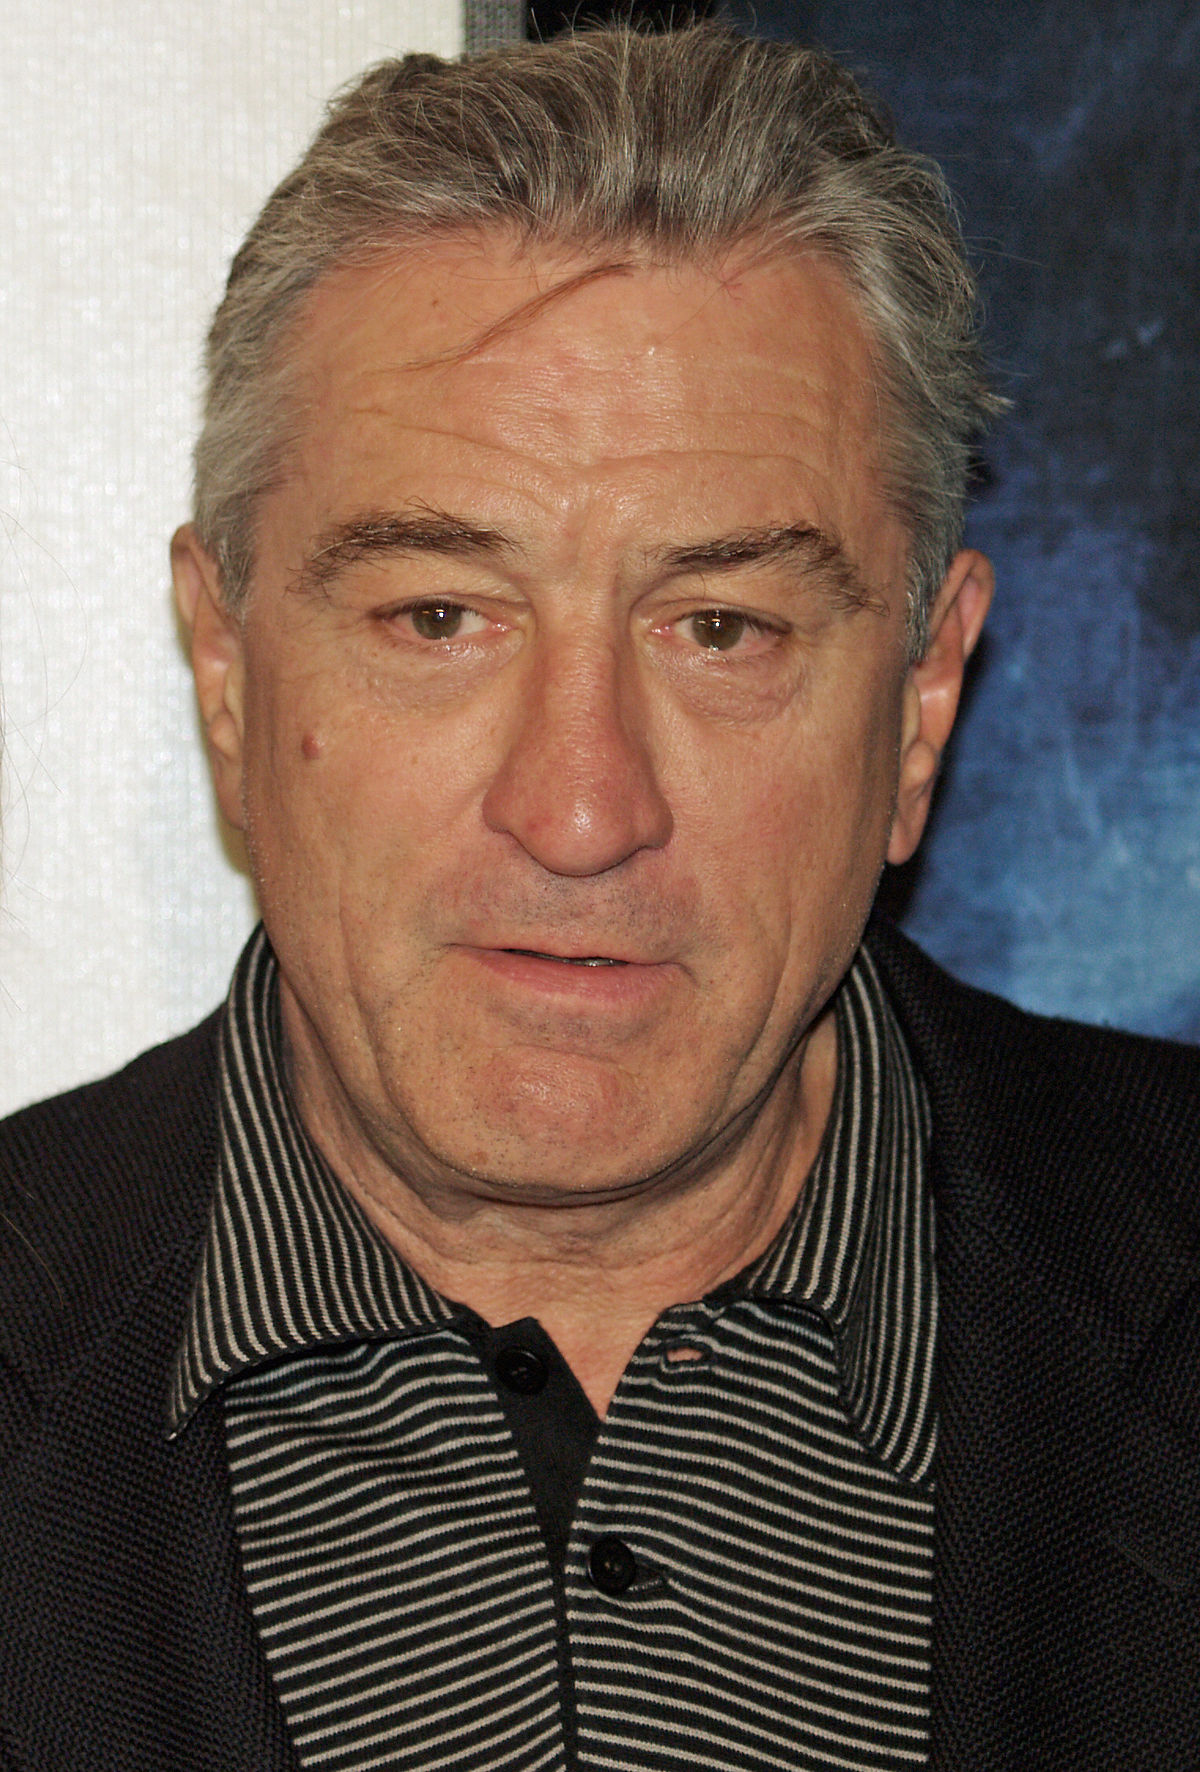 ¿Cuánto mide Robert de Niro? - Altura - Real height 1200px-Robert_De_Niro_3_by_David_Shankbone